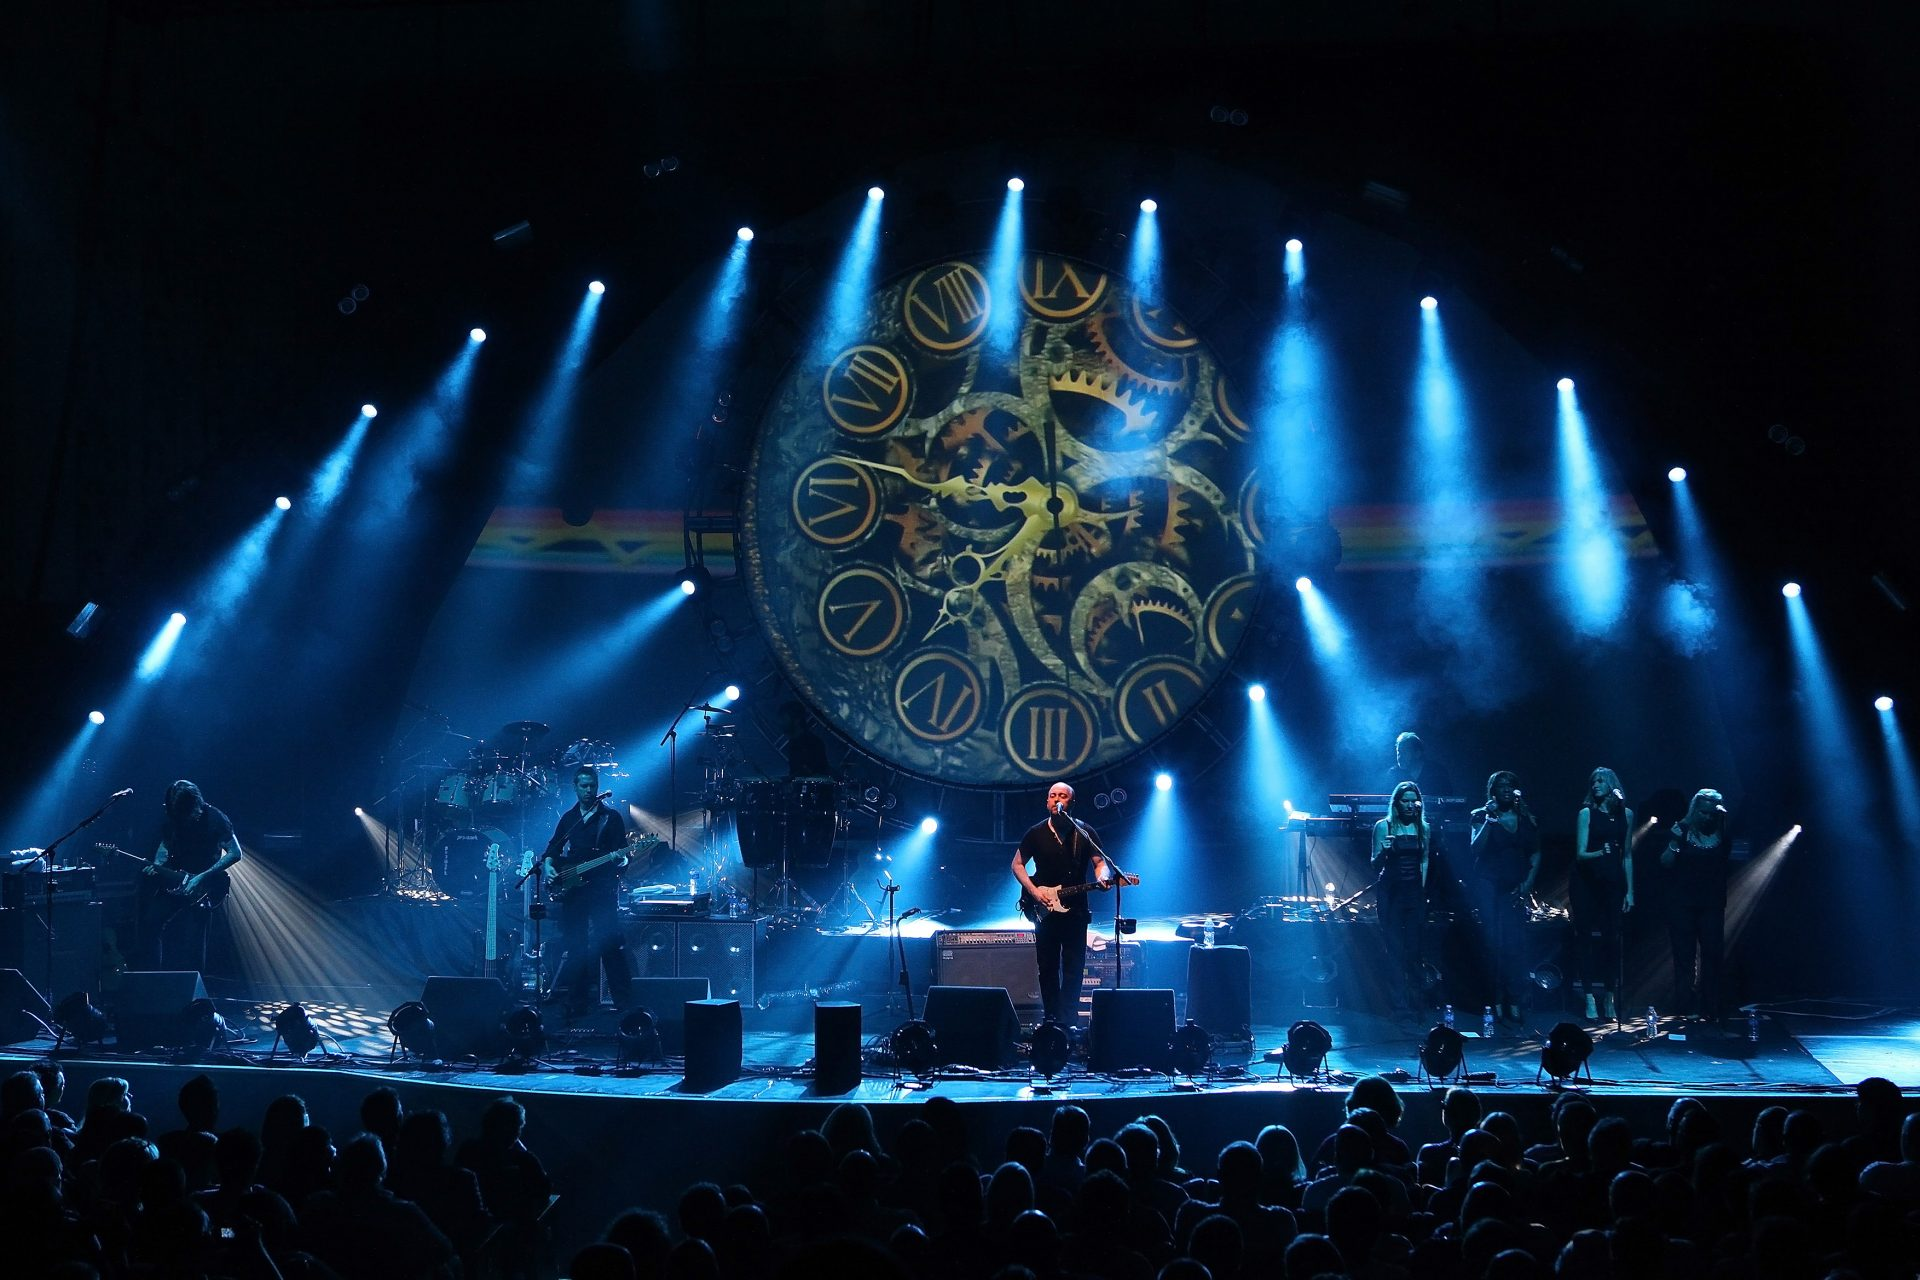 Brit Floyd Tour 2020.Brit Floyd And Their Echoes 2020 Tour Witf